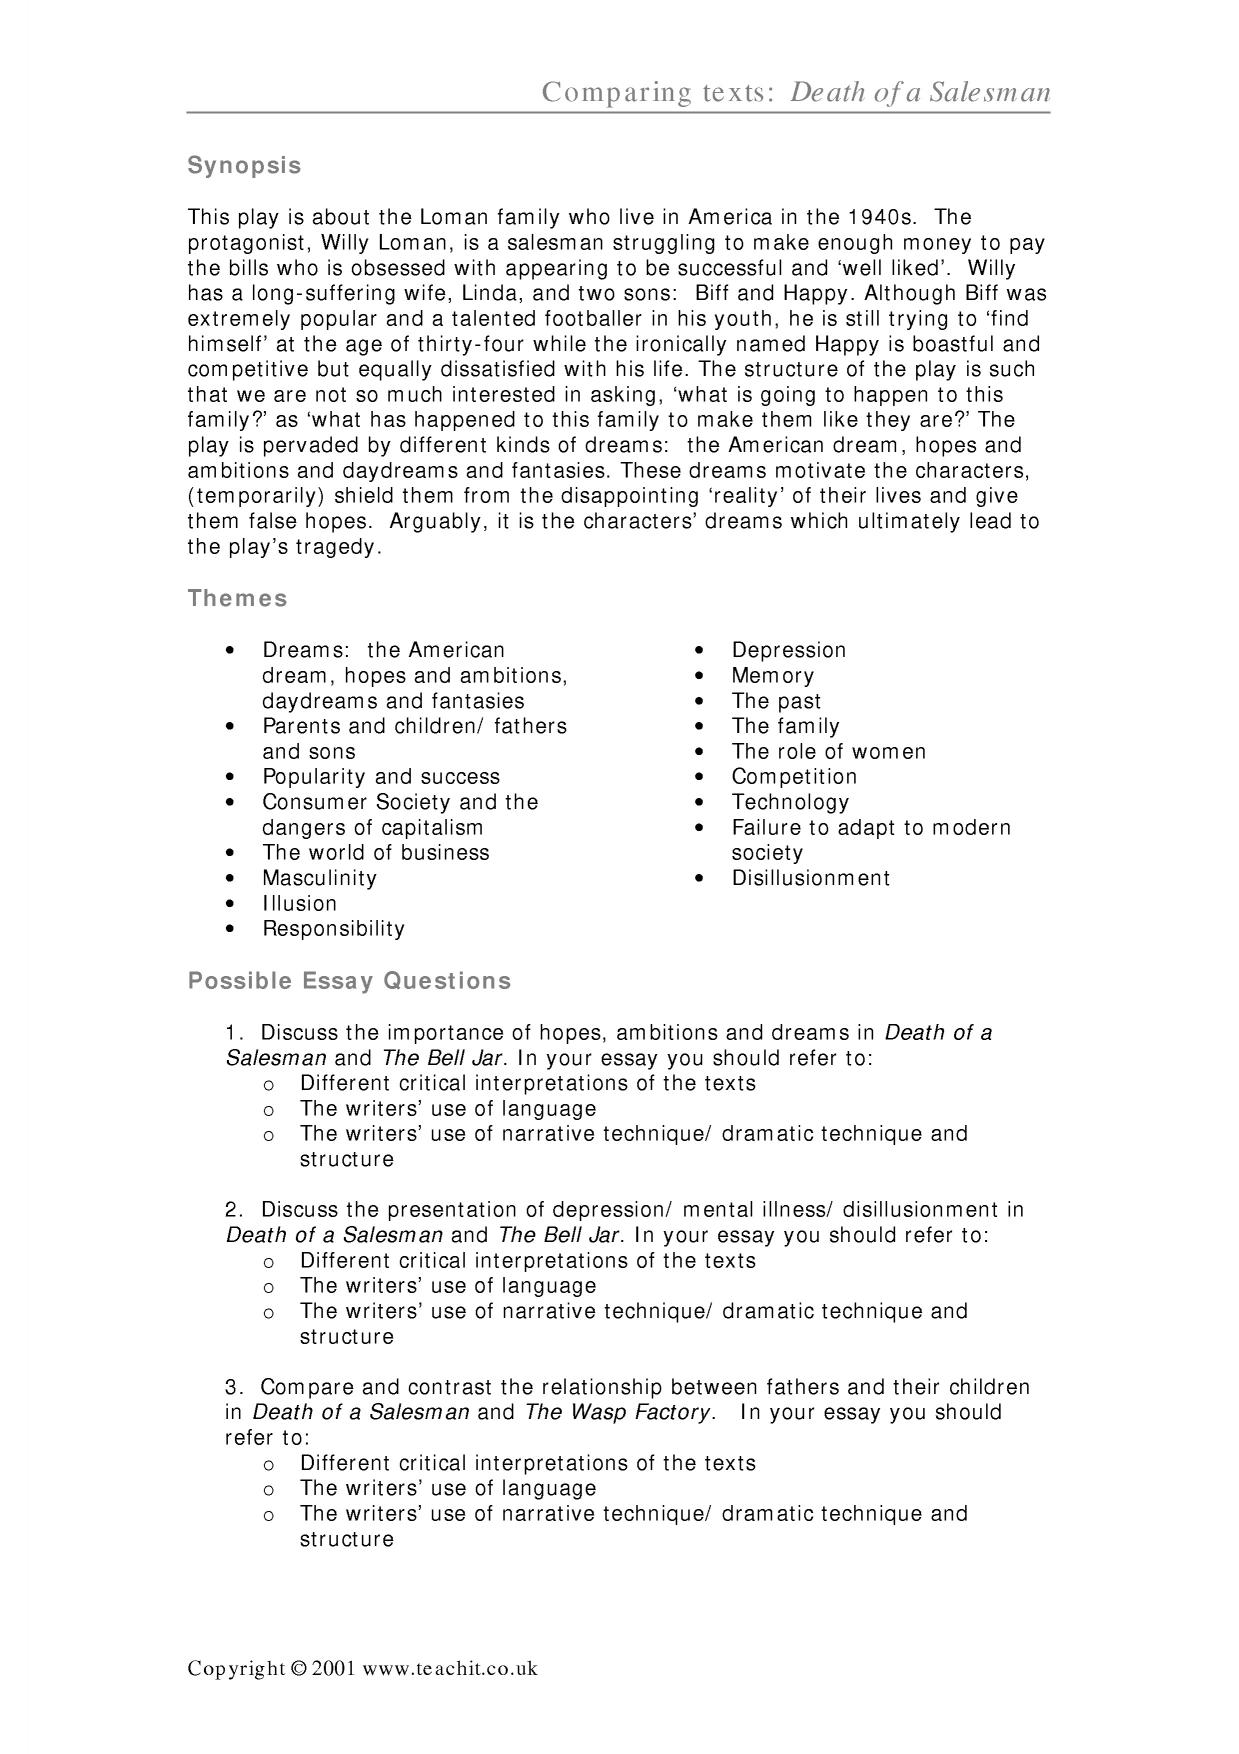 essay role of women in modern society  essay role of women in modern society